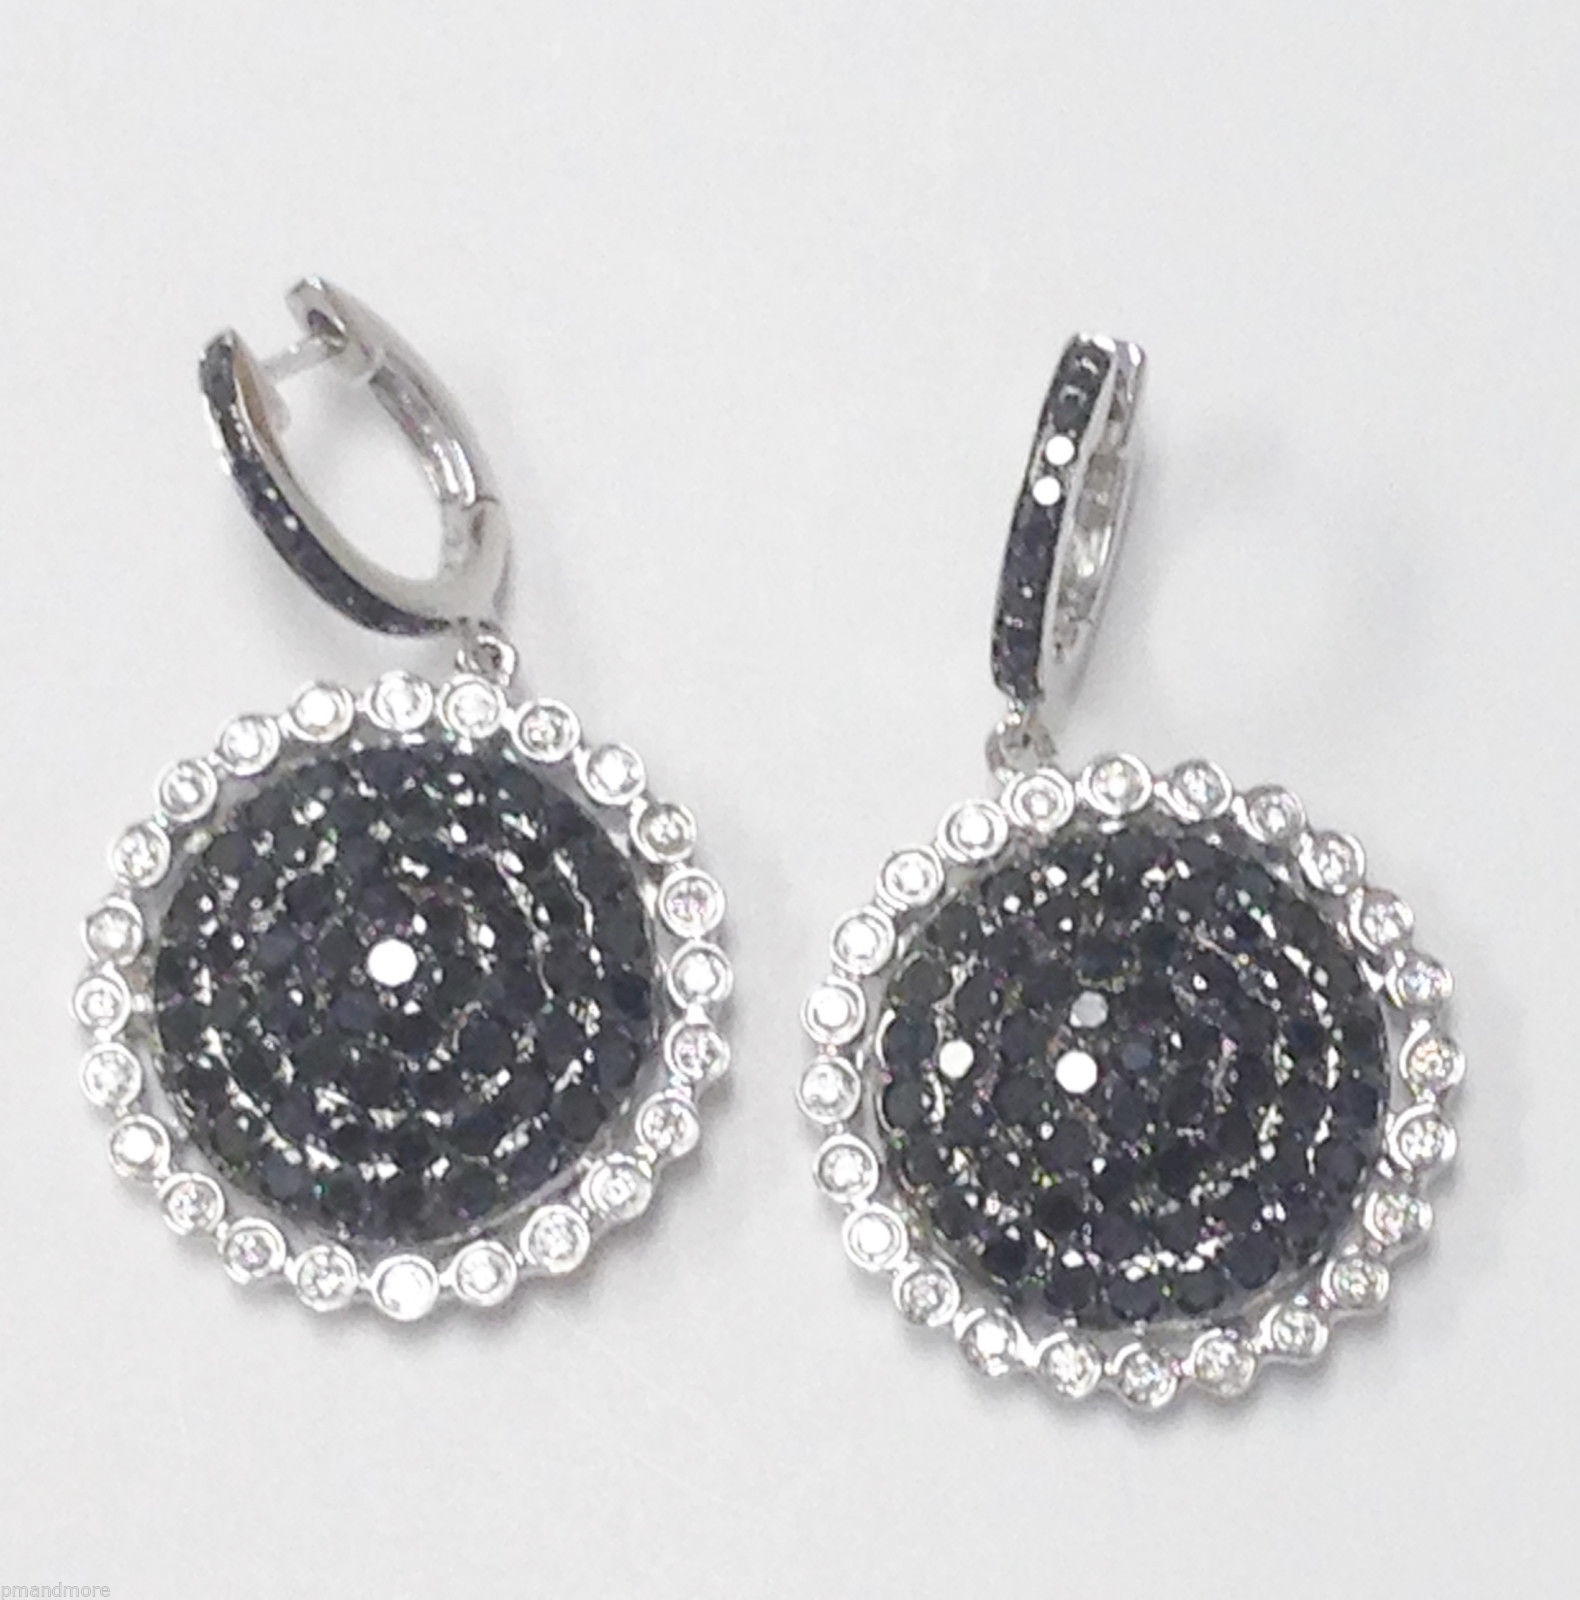 18K WHITE GOLD 3.07 TCW BLACK & WHITE DIAMOND EARRINGS - RETAIL $8750 - FREE S&H